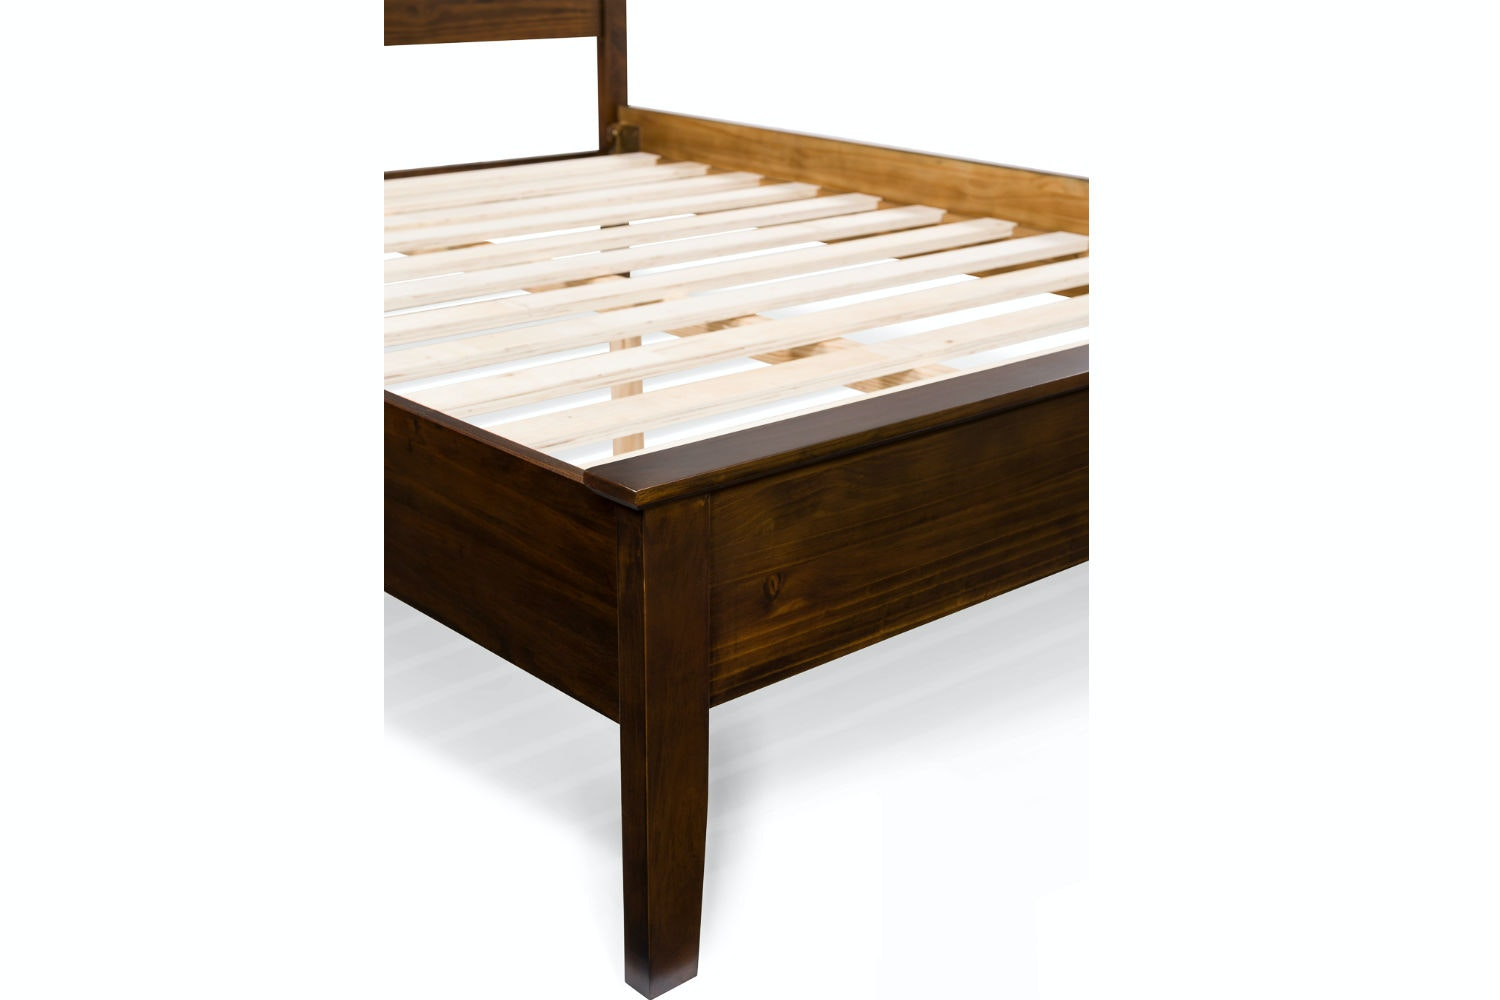 Wentworth King Bed Frame | 5ft